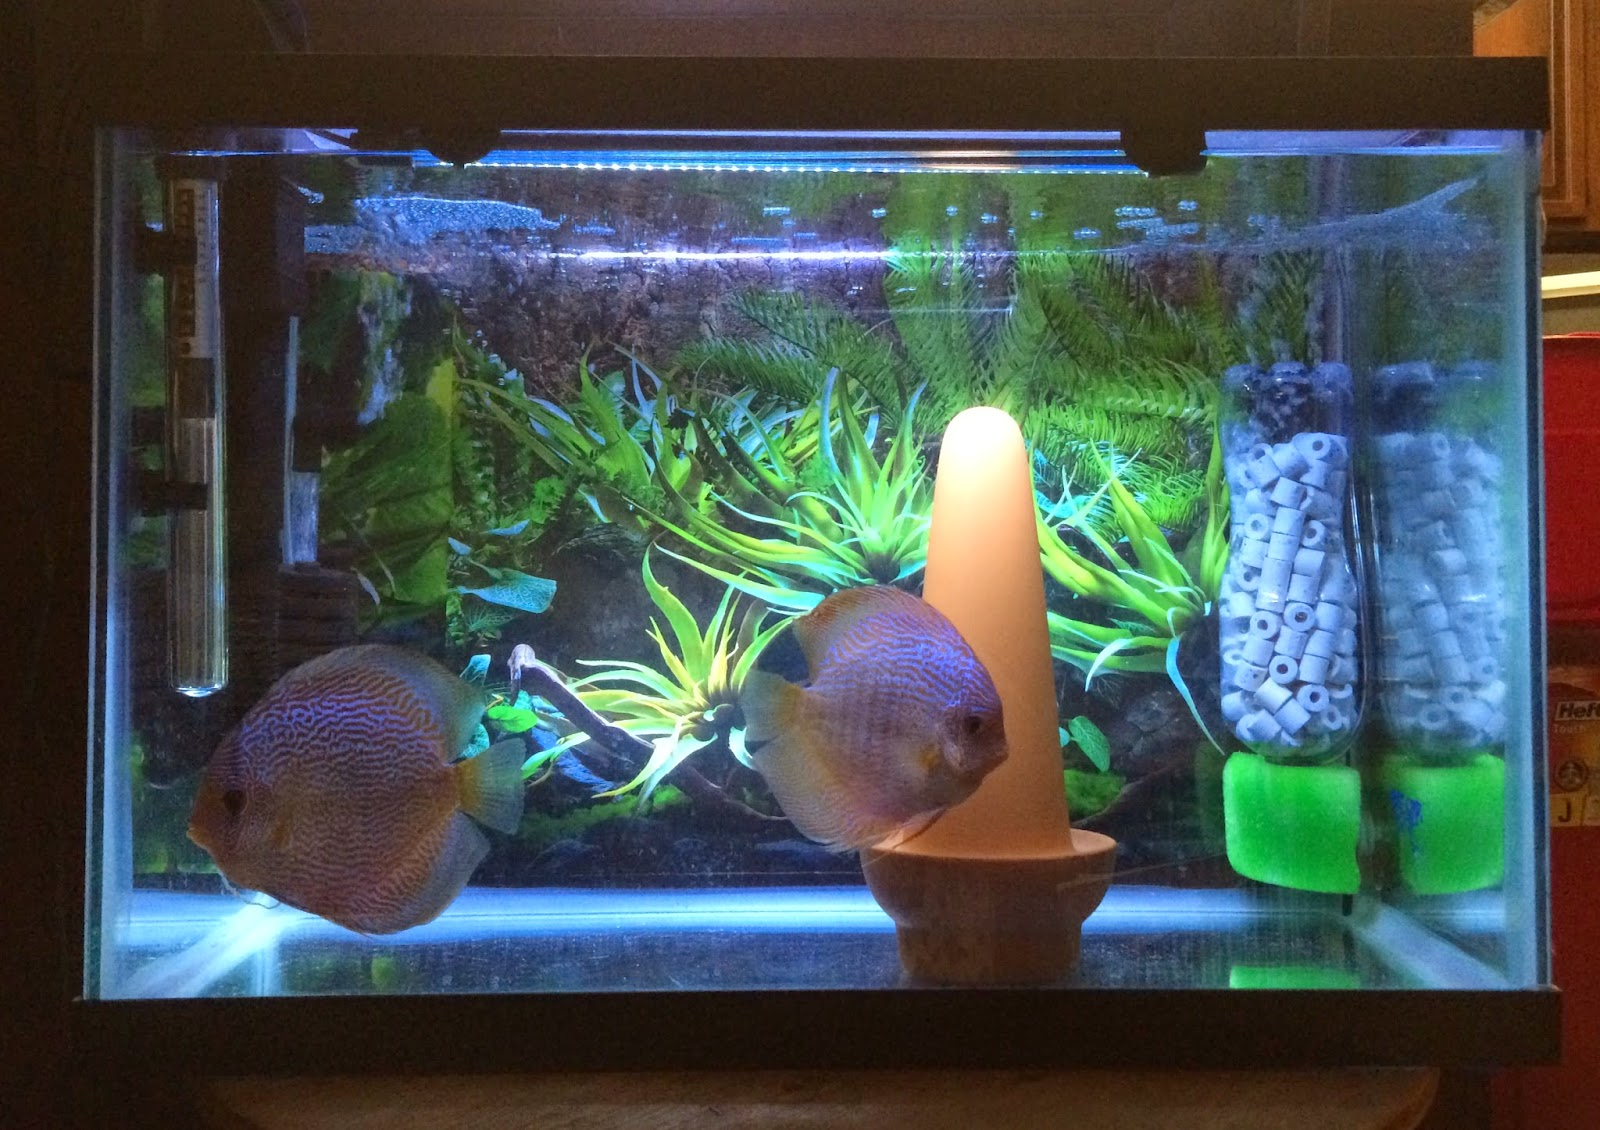 Kaylen S Discus Blog Diy Aquarium Filter